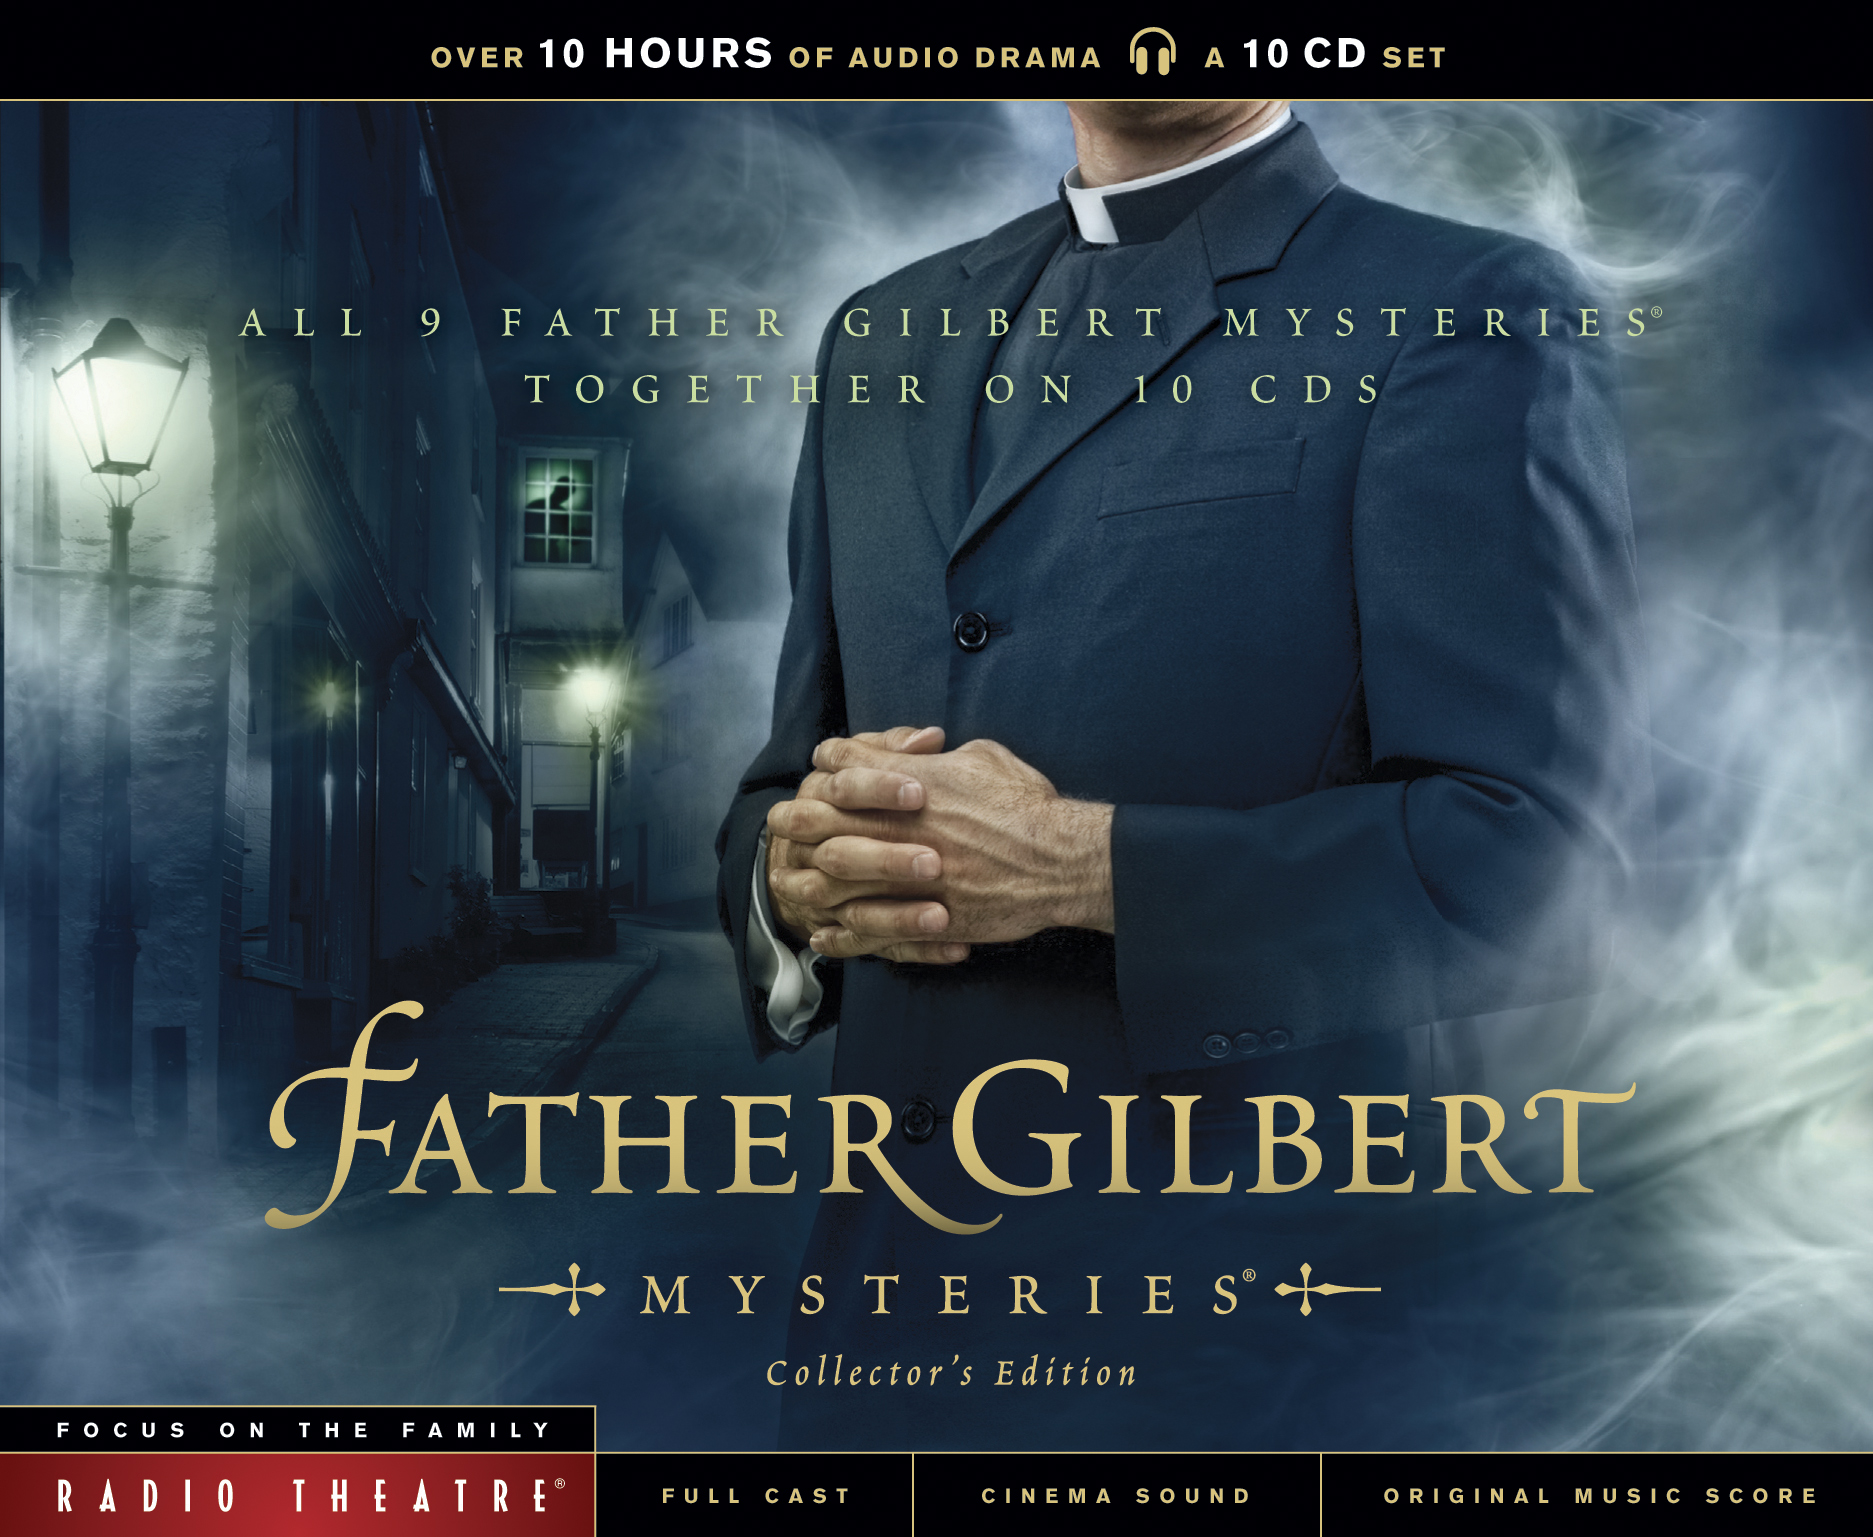 father gilbert mysteries collectors edition cd cover